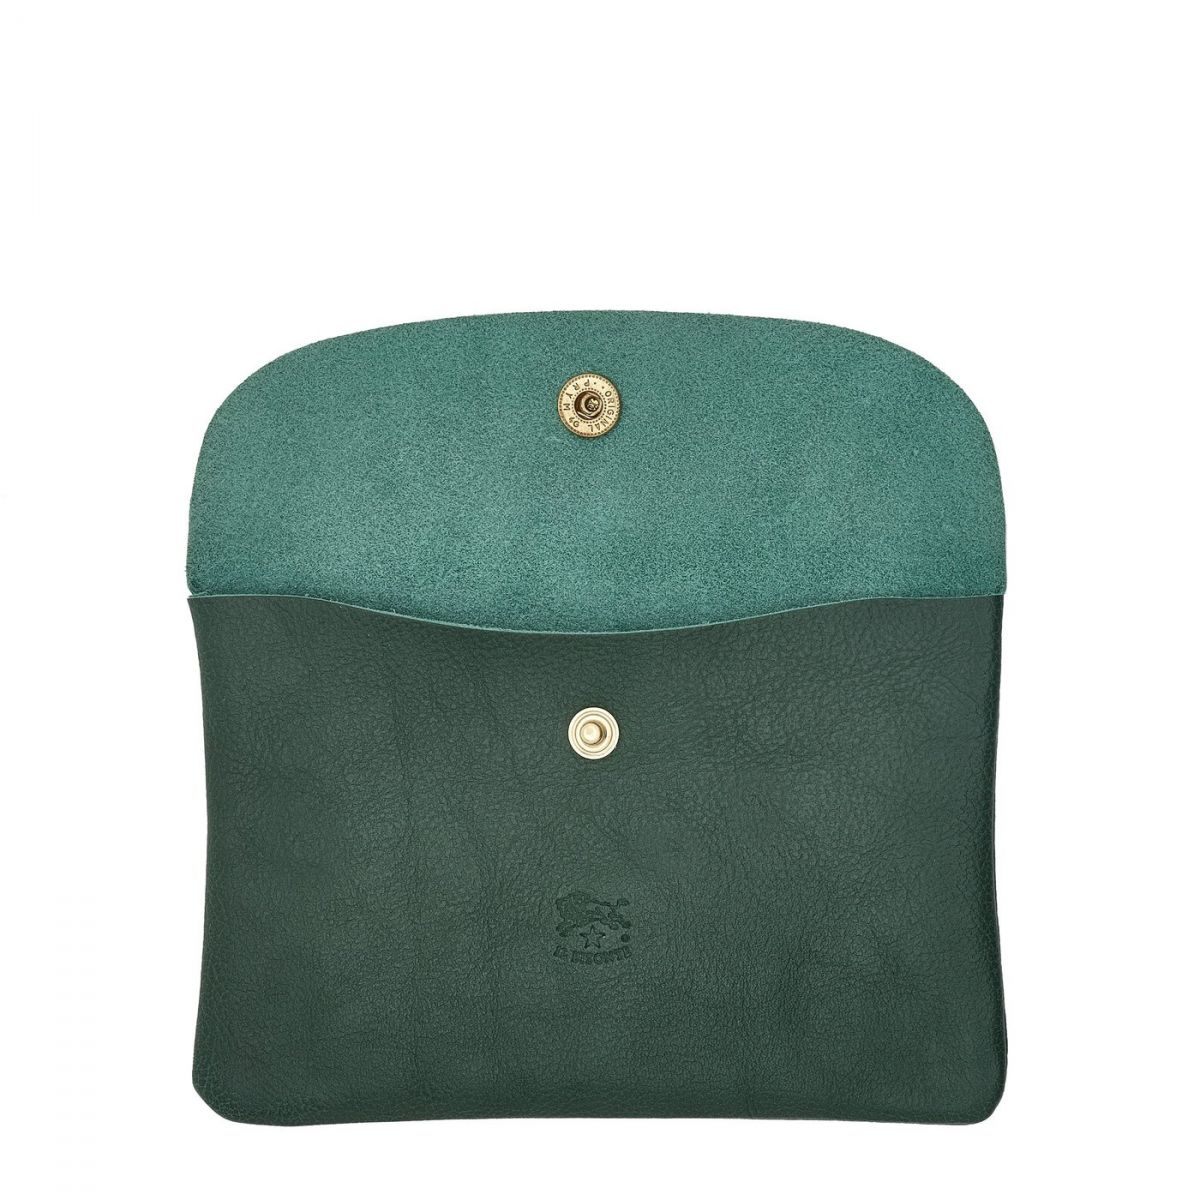 Case  in Cowhide Double Leather SCA007 color Green | Details